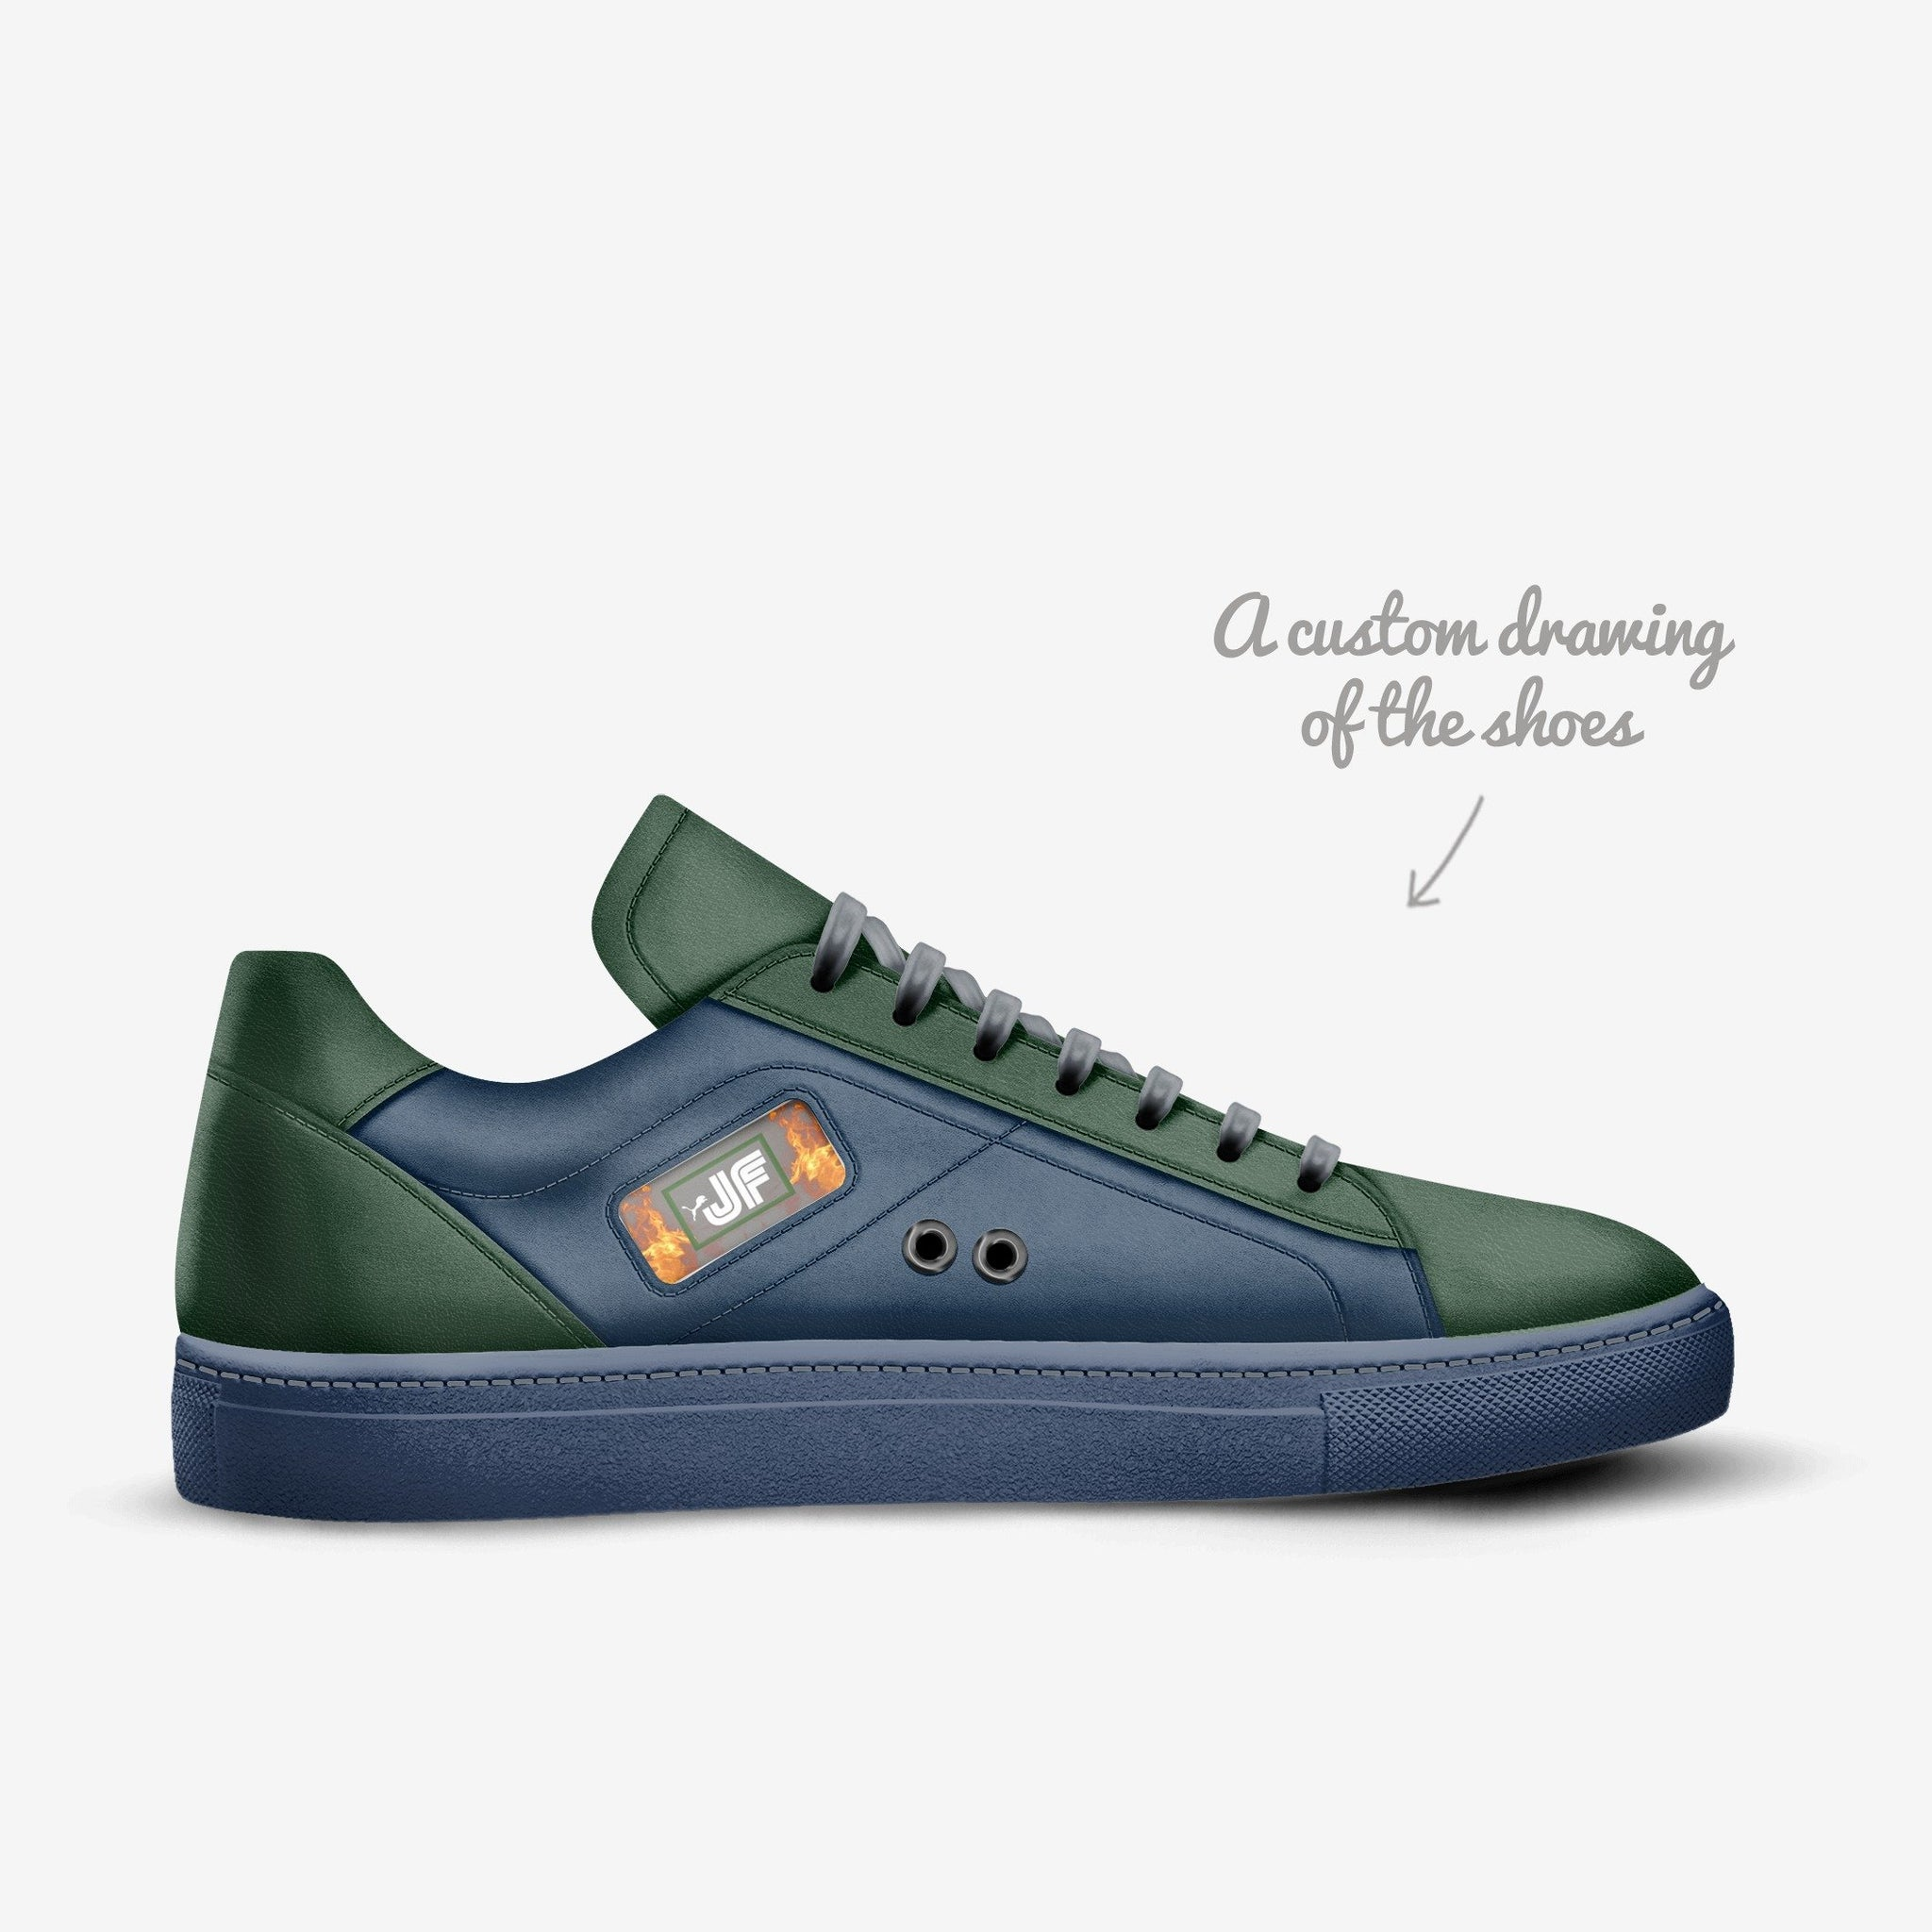 JF LT2019 Luxury Sneakers